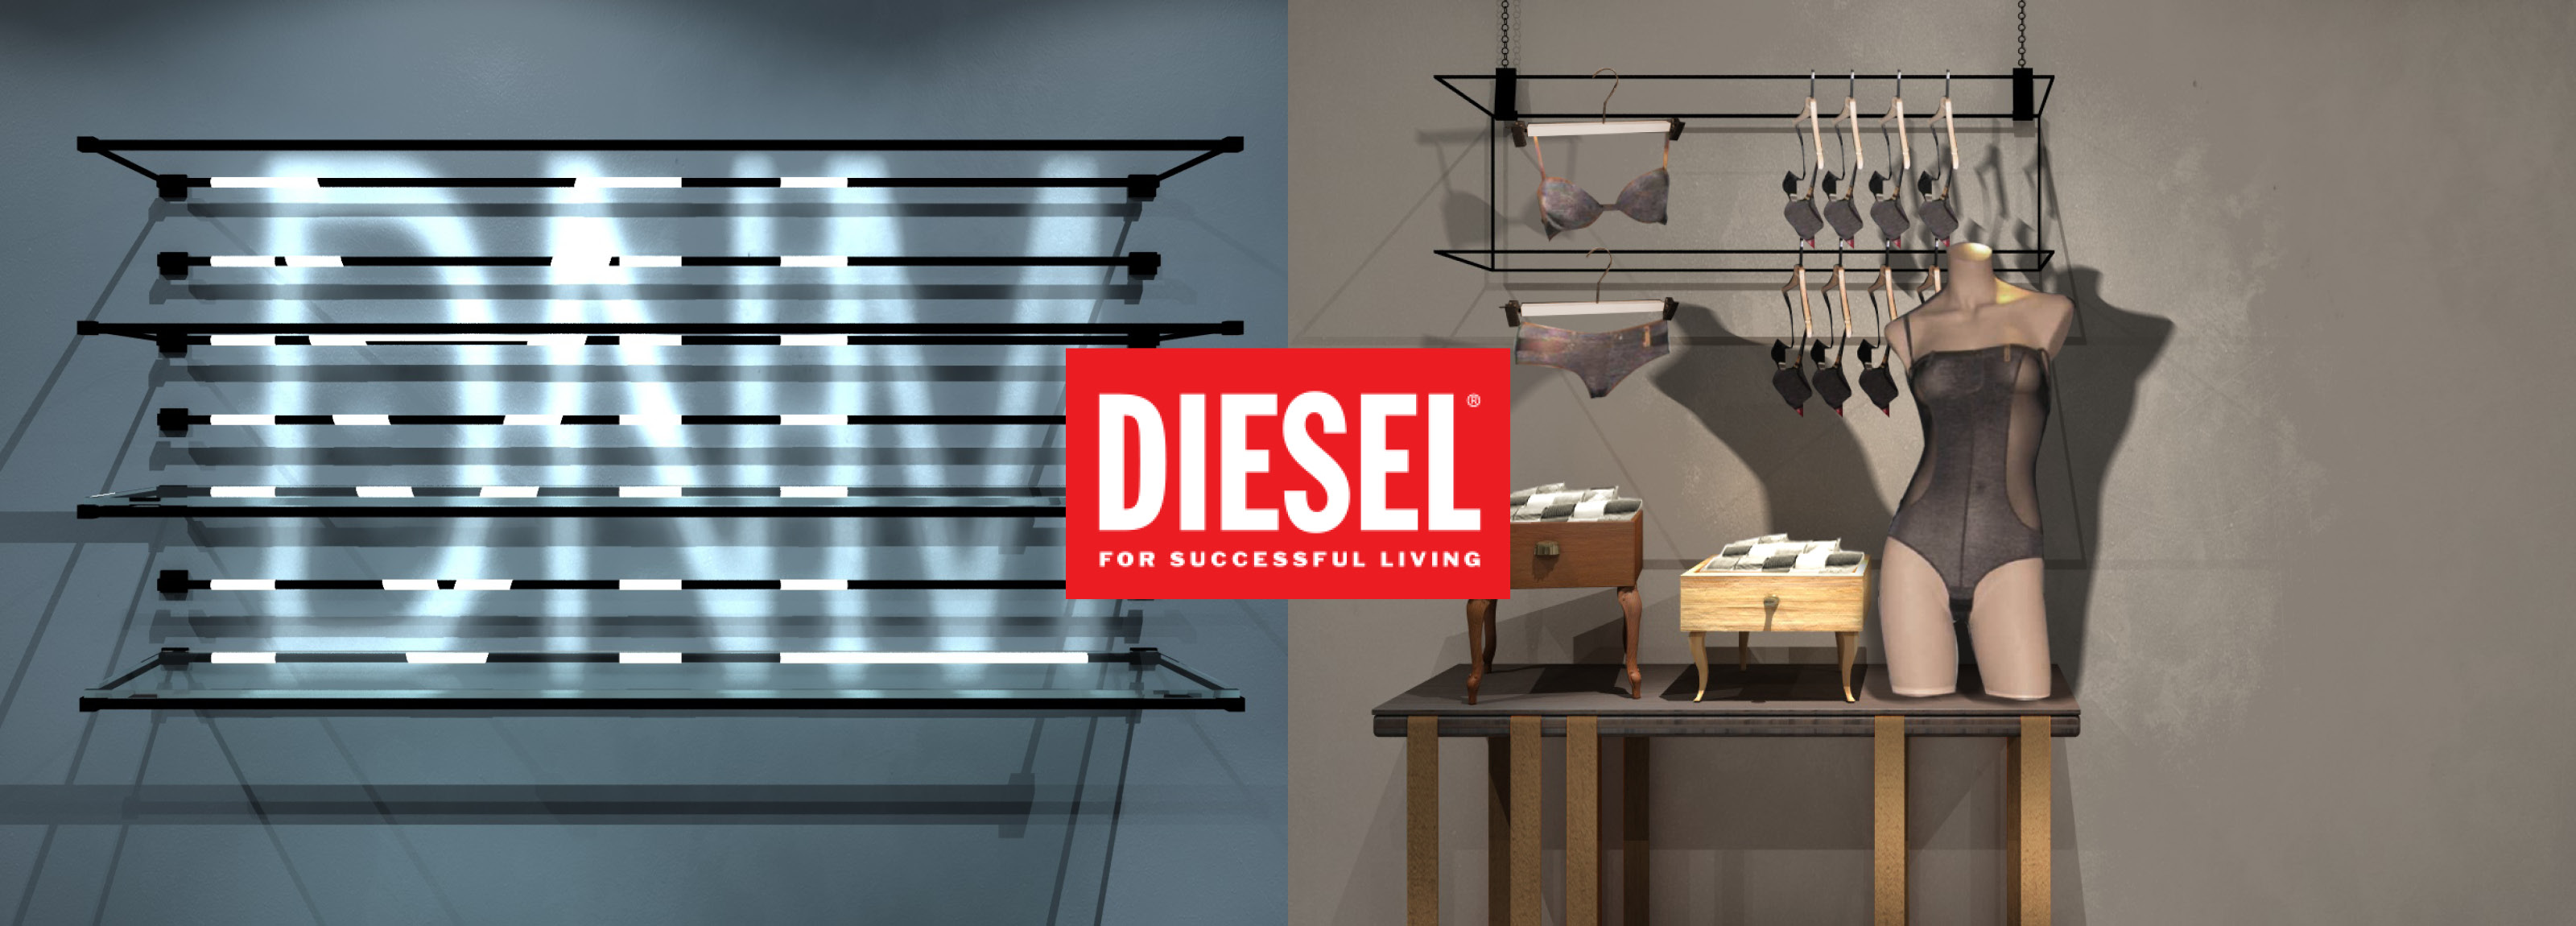 Retail project developed of Hangar Design Group for Diesel on the theme of underwear.